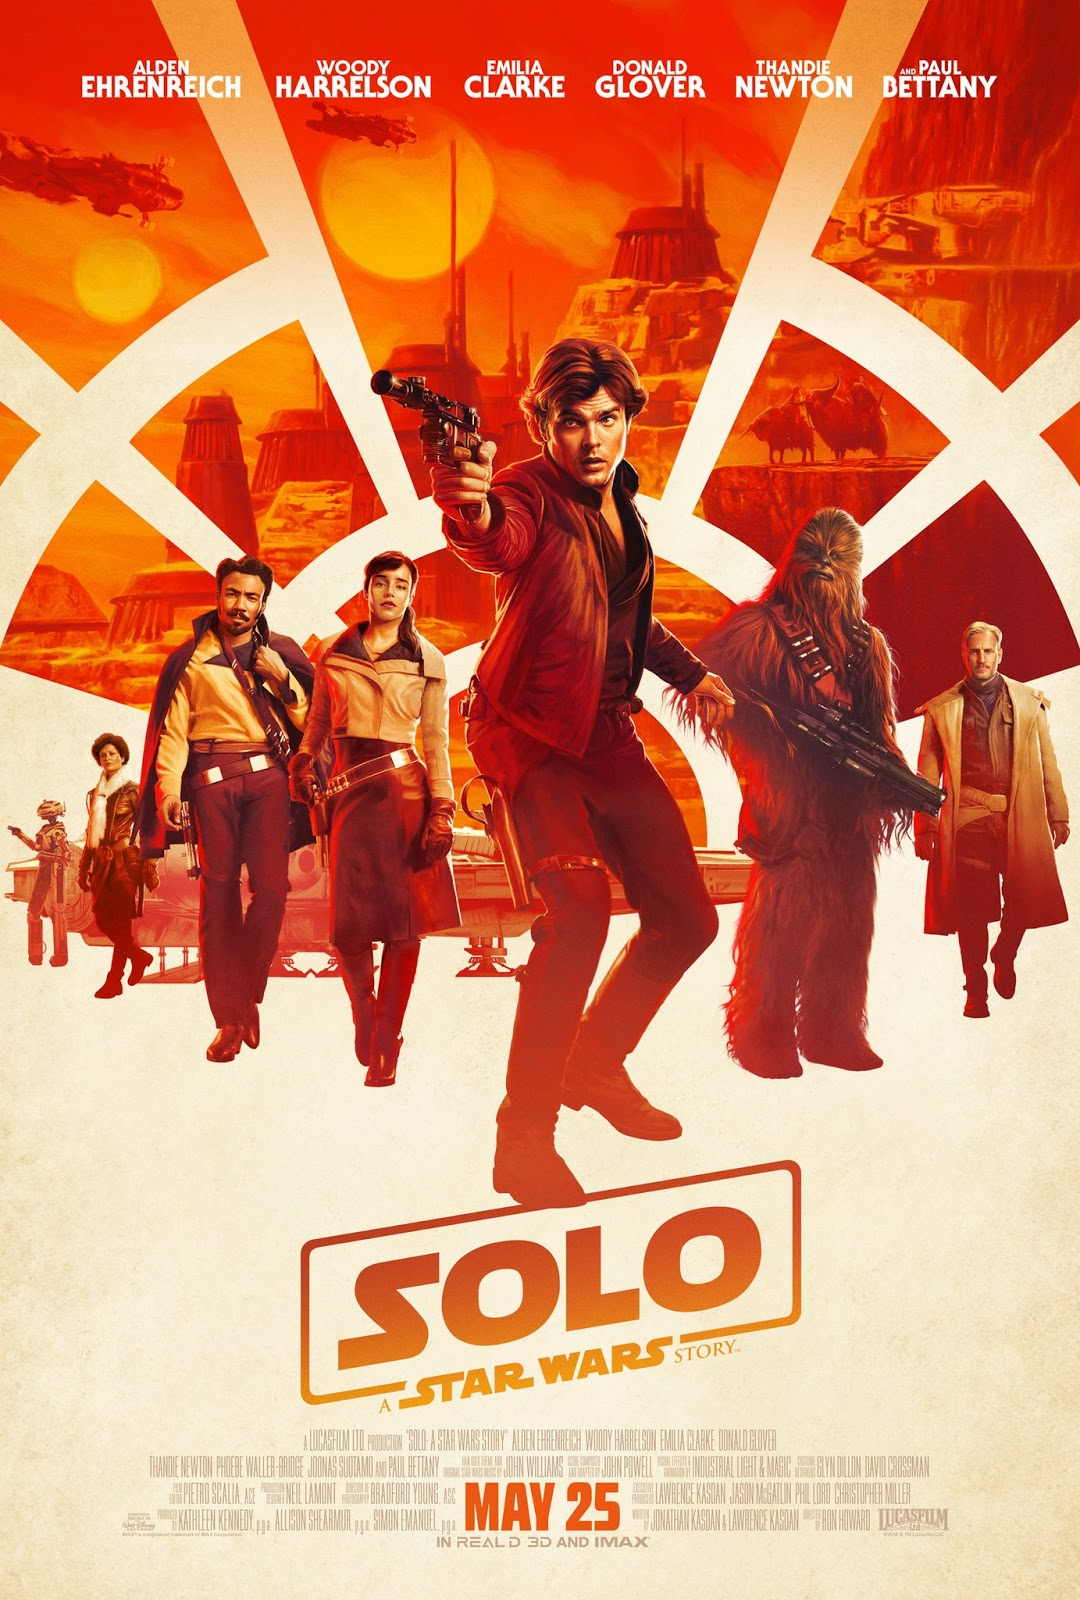 Solo A Star Wars Story movie poster